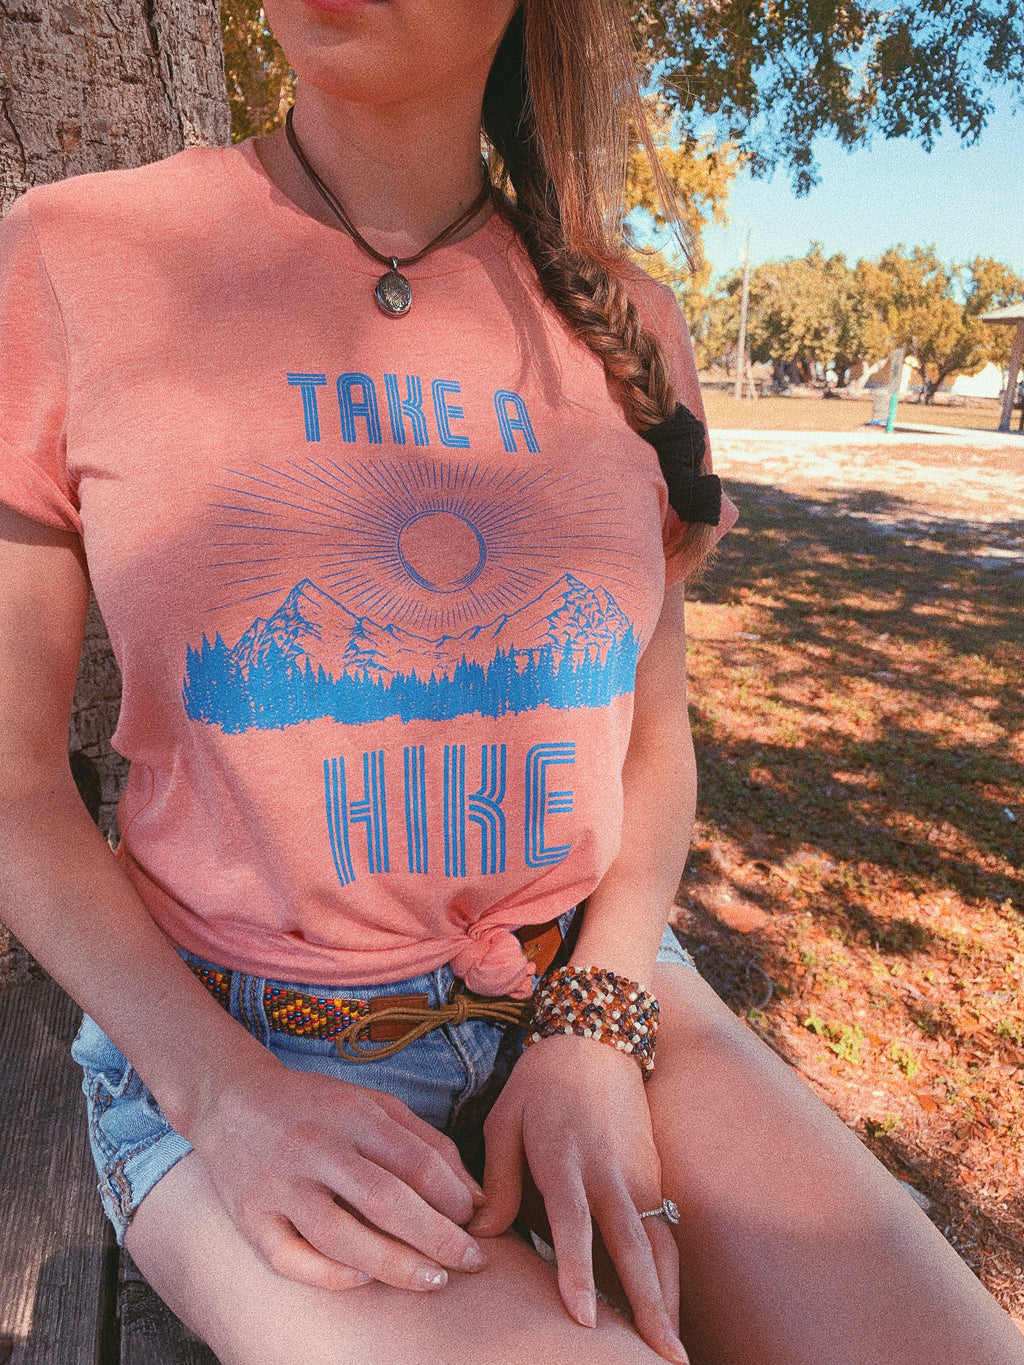 Take a Hike with your best friend in our women's Take a Hike tee! The perfect adventure shirt to explore the world and add to your vacation wardrobe!